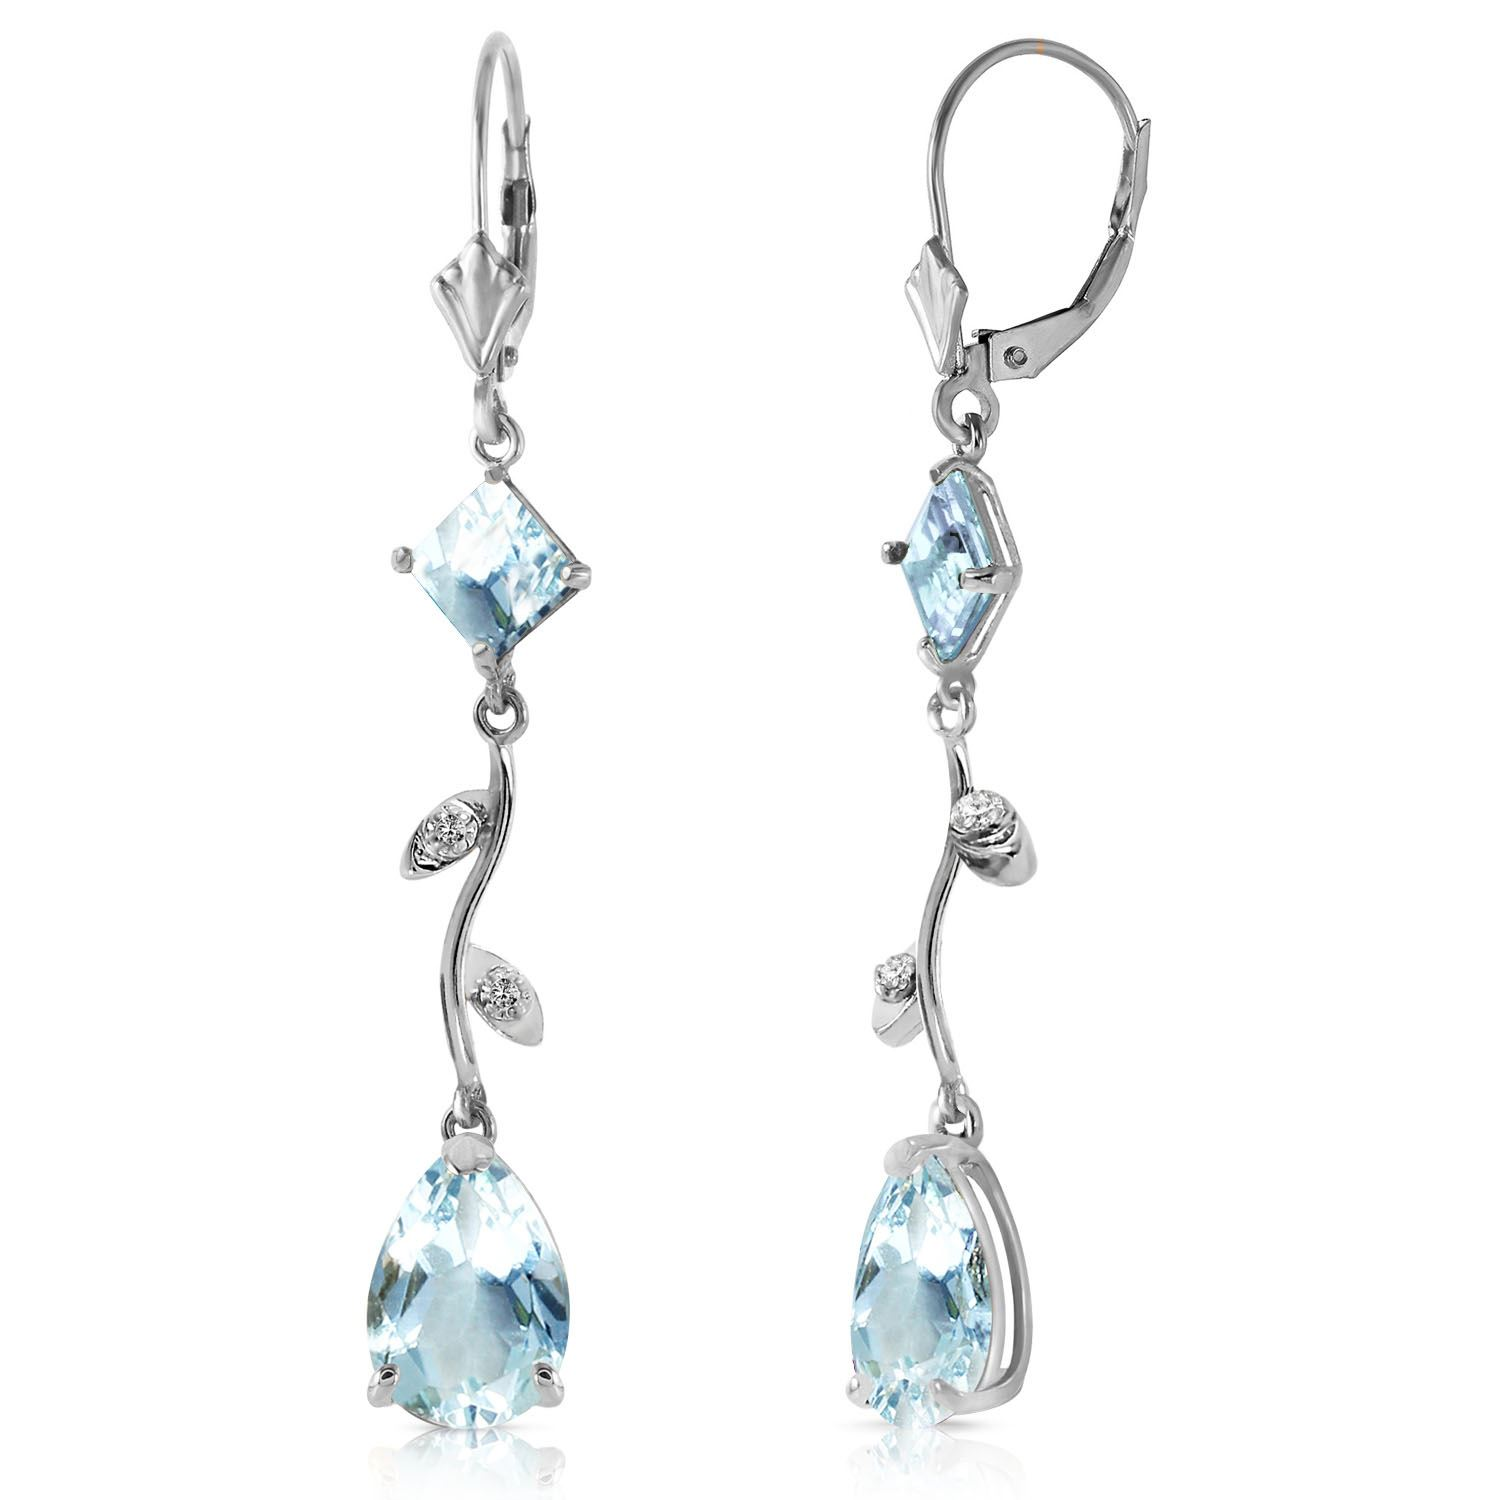 Alarri 3 97 Carat 14k Solid White Gold Chandelier Earrings Natural Diamond Aquamar